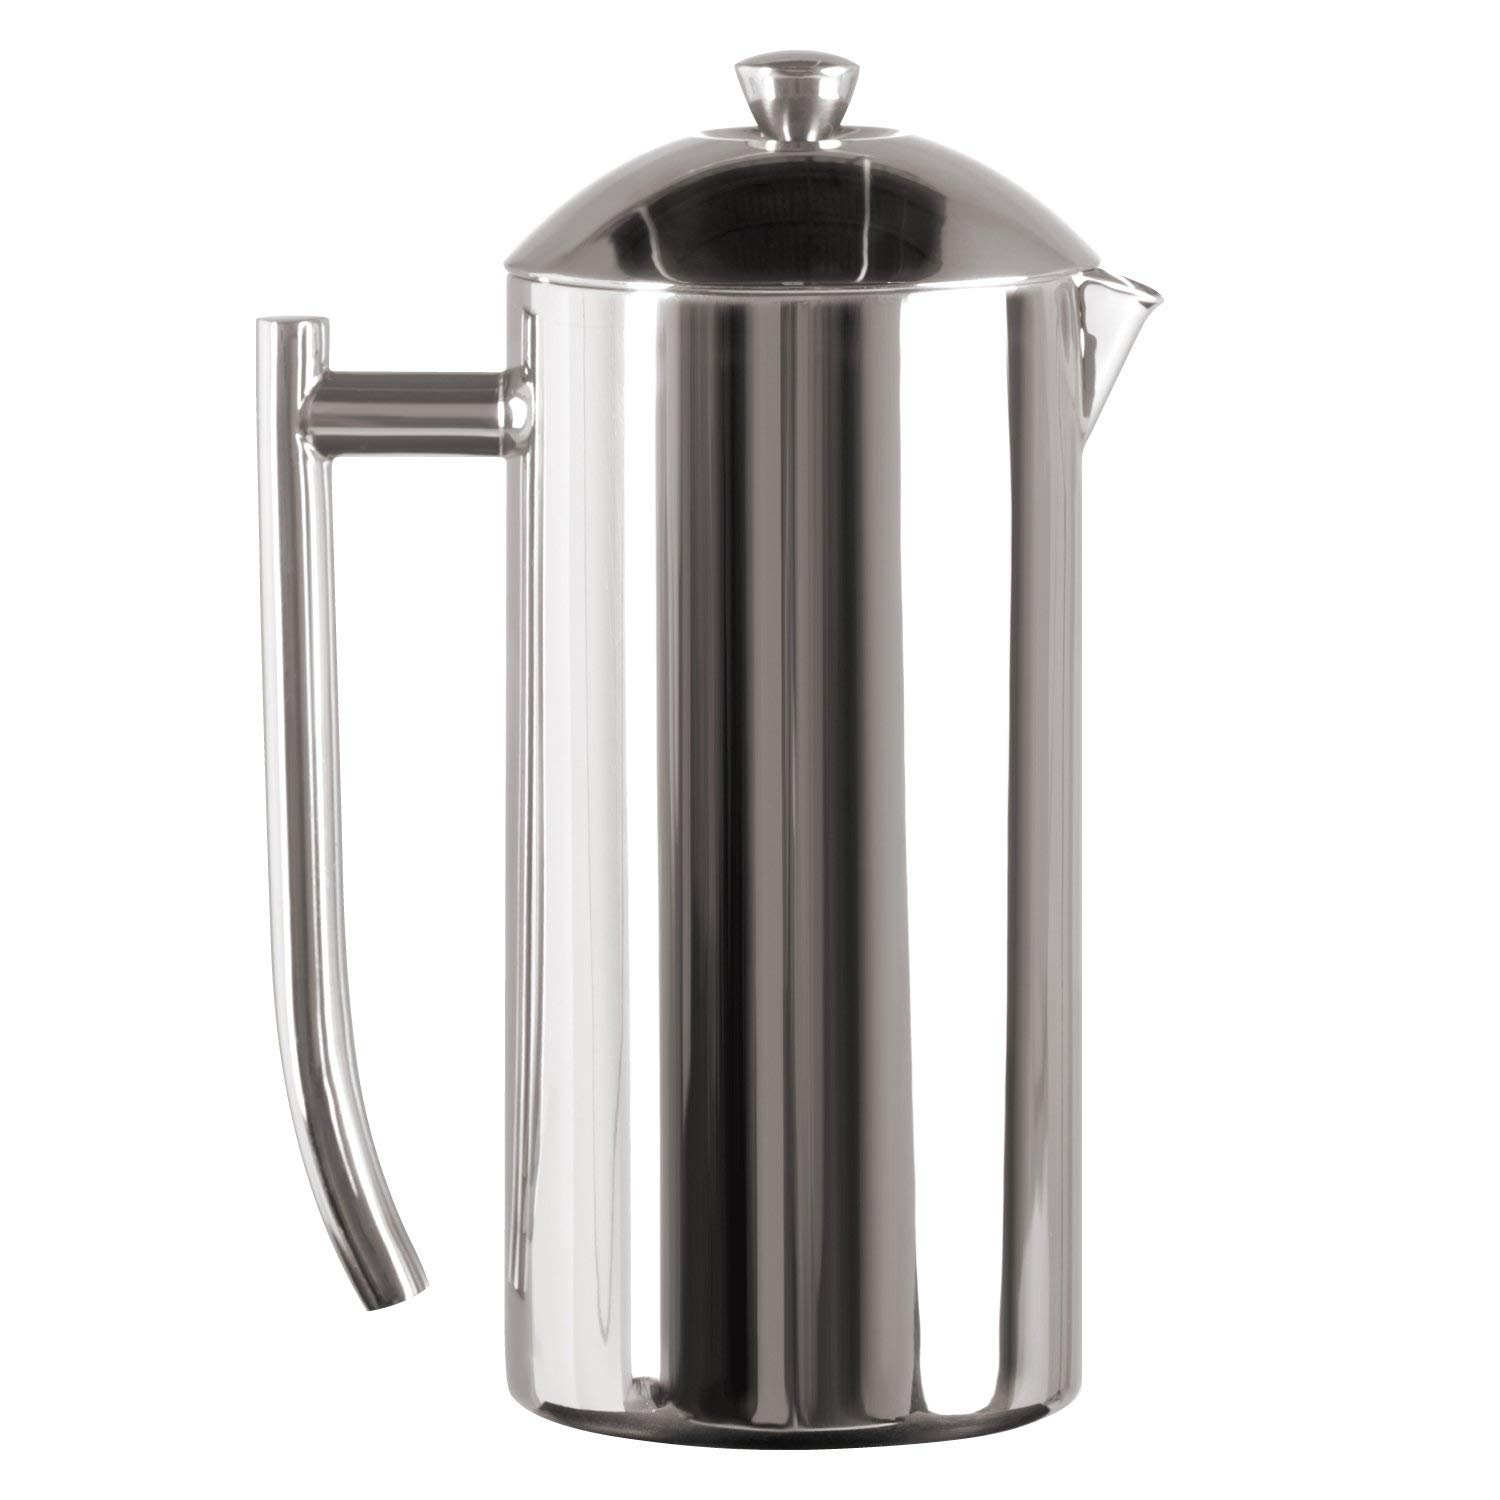 Frieling 0104 french press